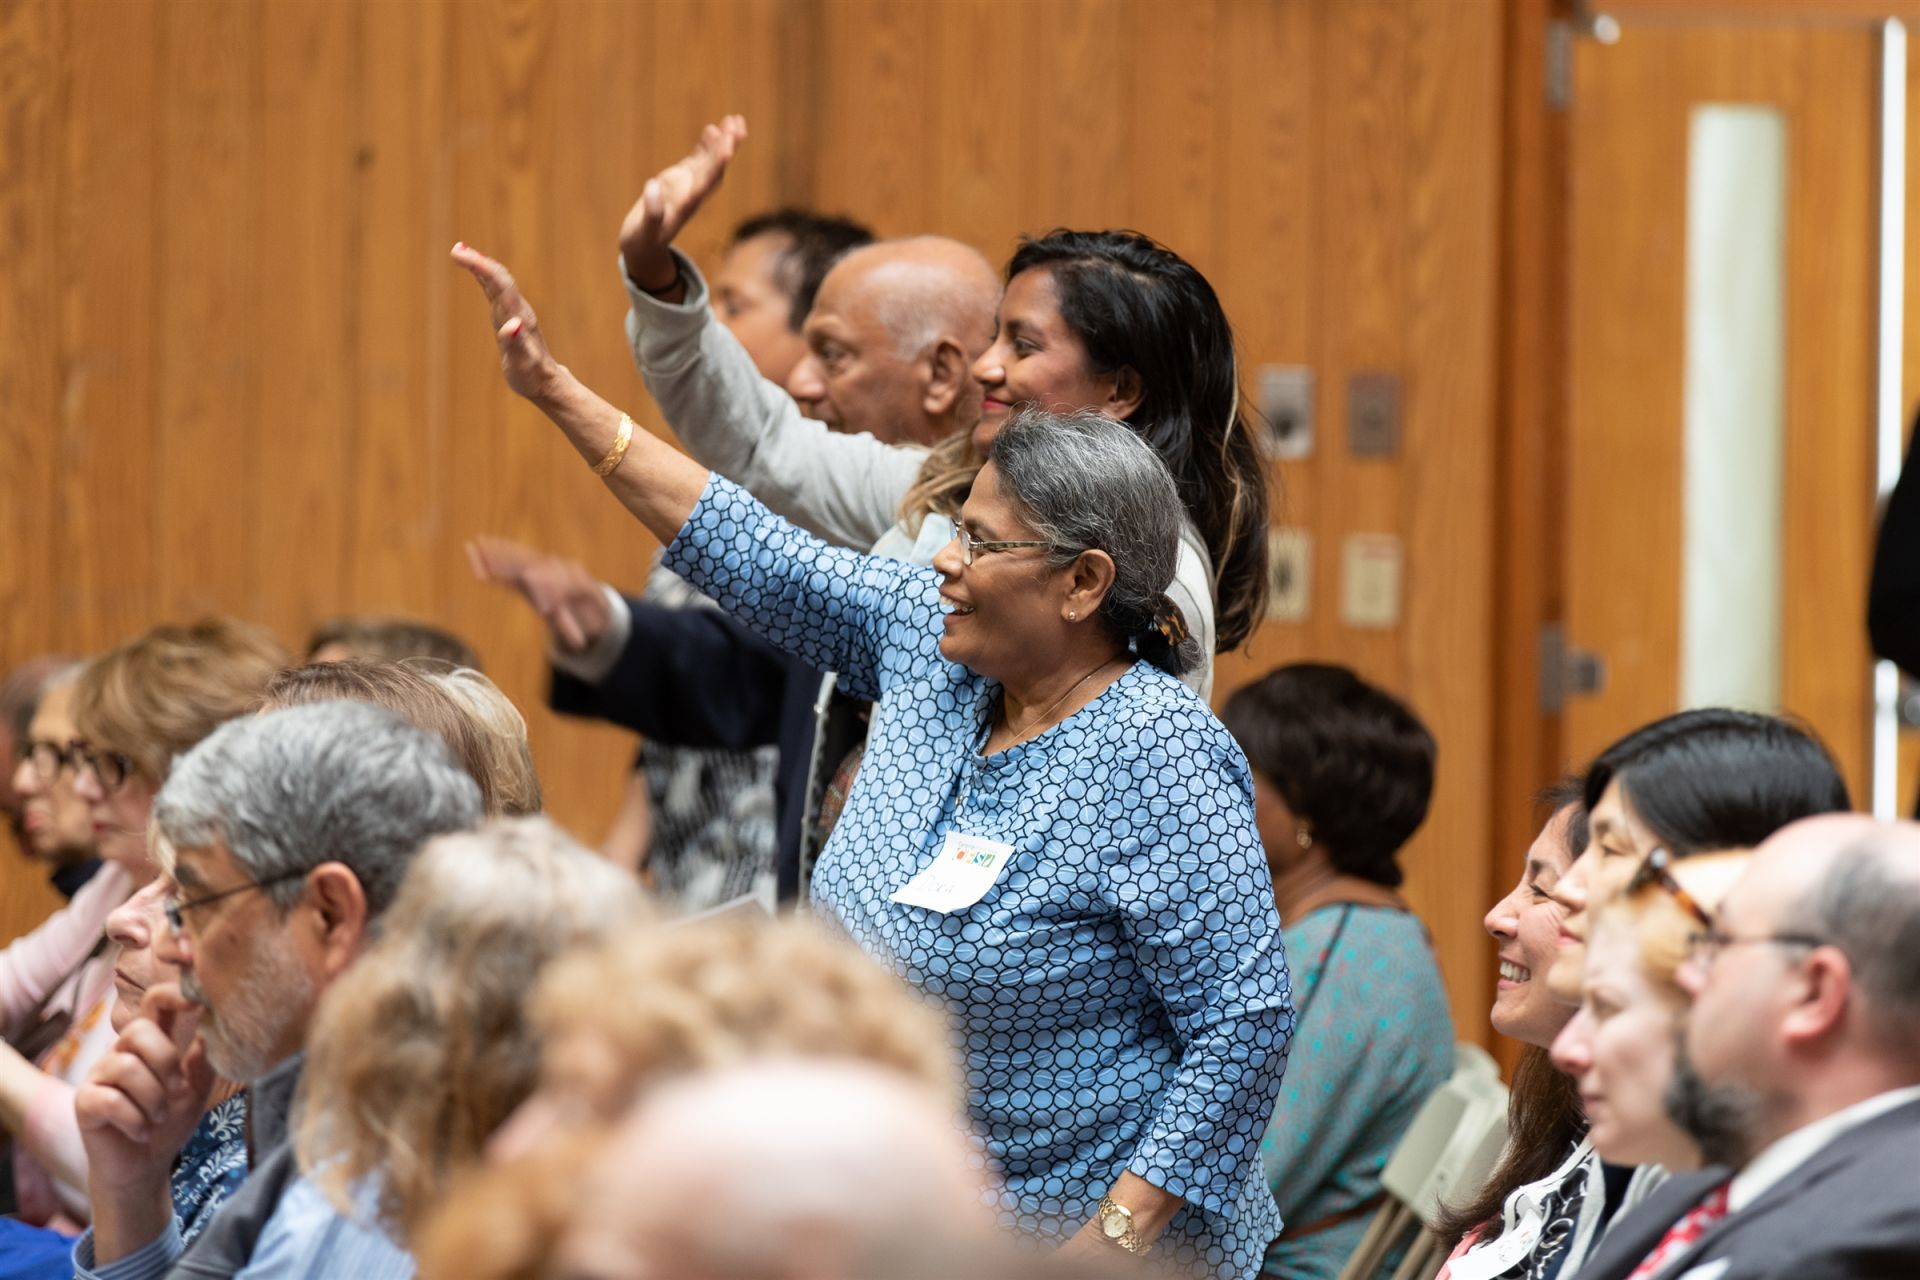 Family members wave to their student during the assembly for Significant Elders Day.